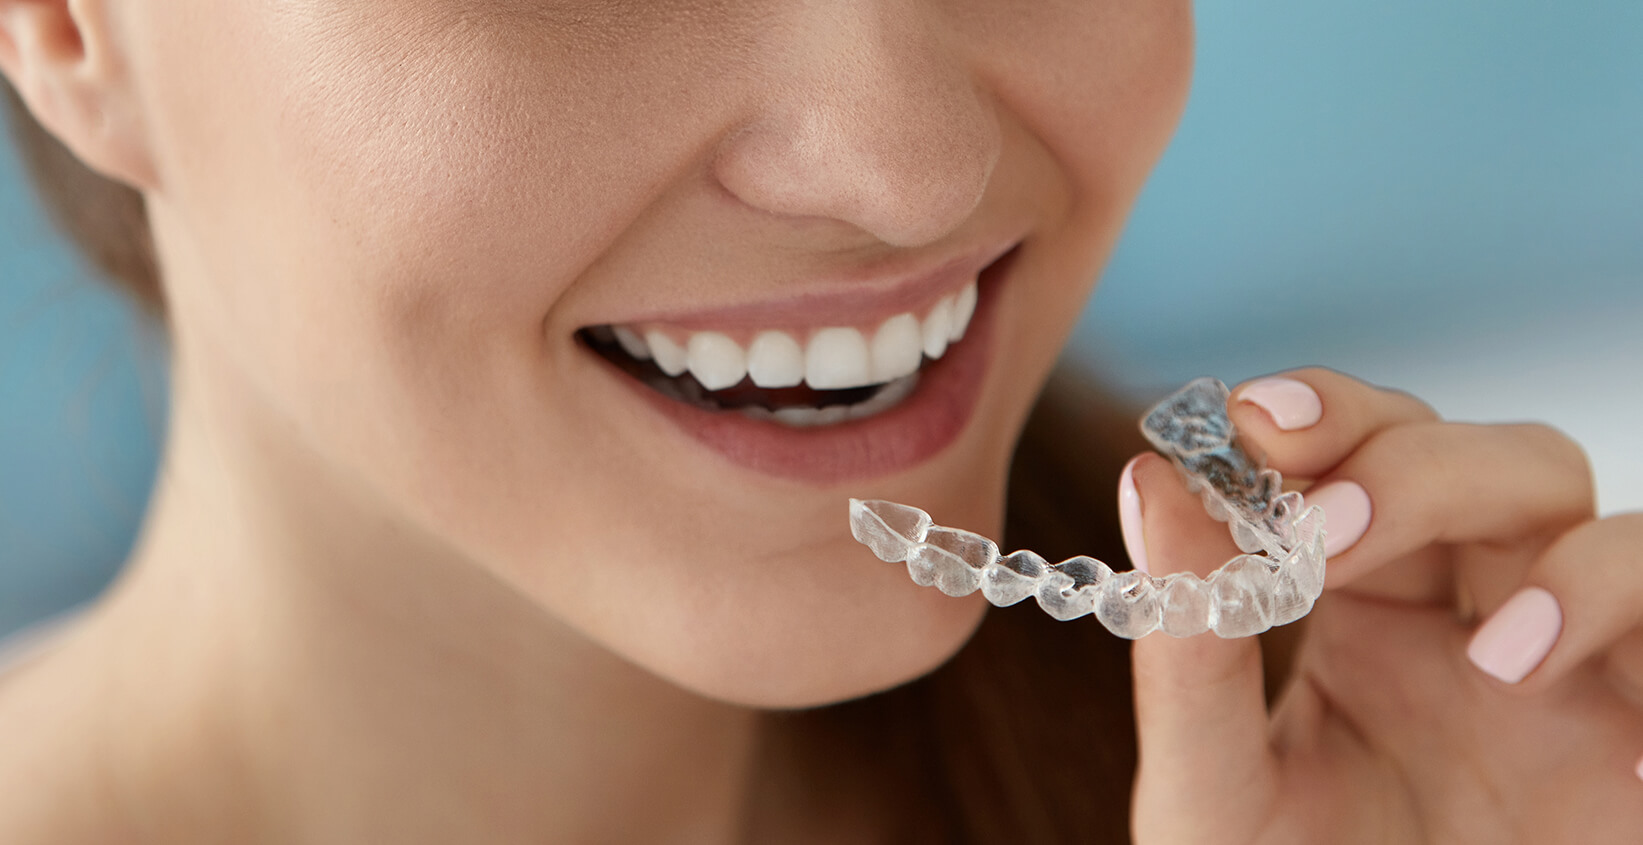 Why Choose Clear Teeth Aligners Over Other Teeth Straightening Options in Manhattan Beach, CA?